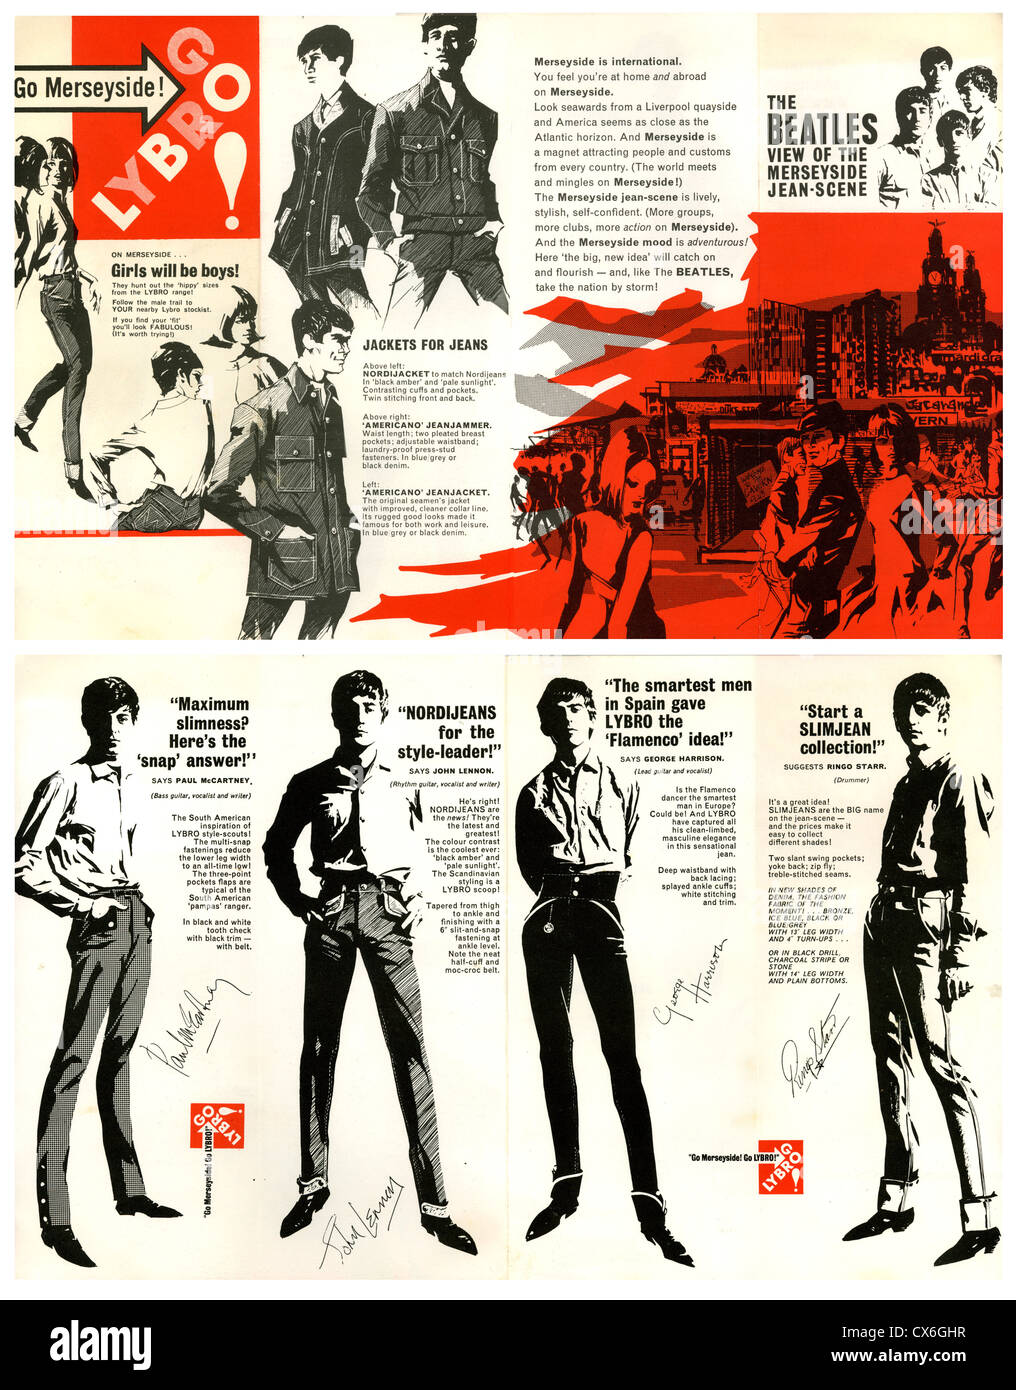 000636 - Beatles Lybro Clothing 1963 Promotional Flyer - Stock Image